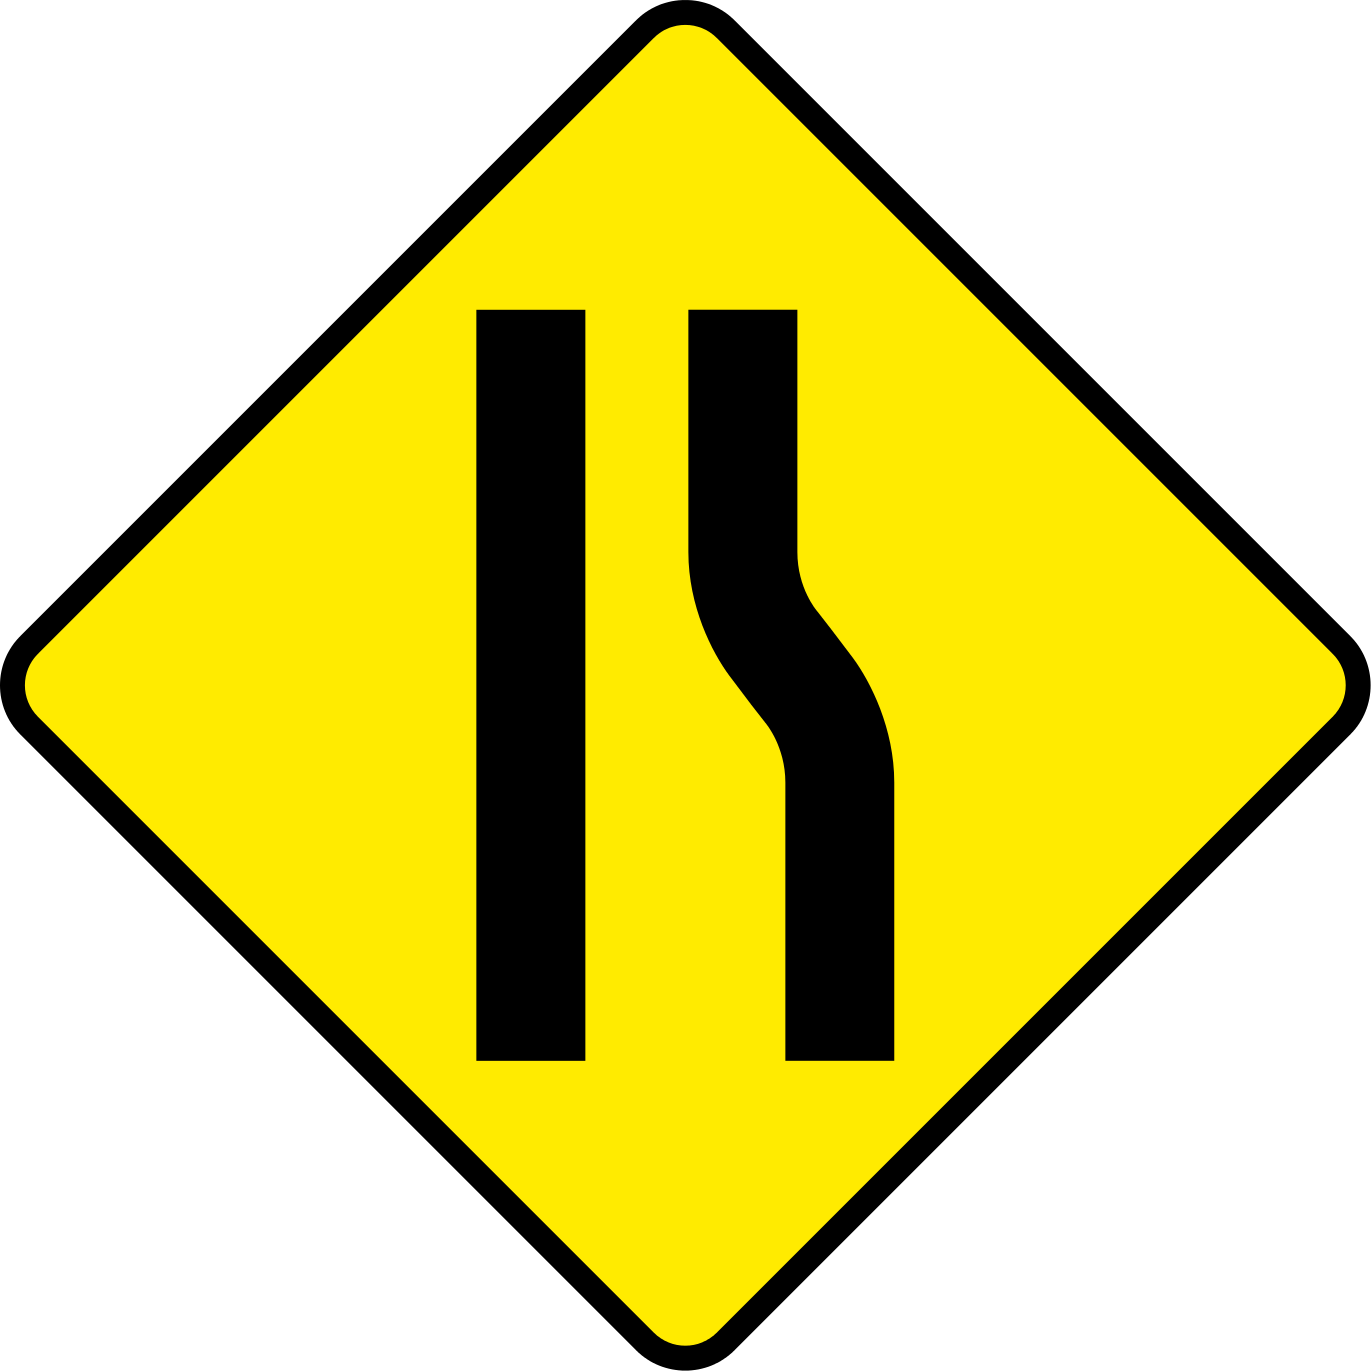 Clipart road file. Ireland sign w r